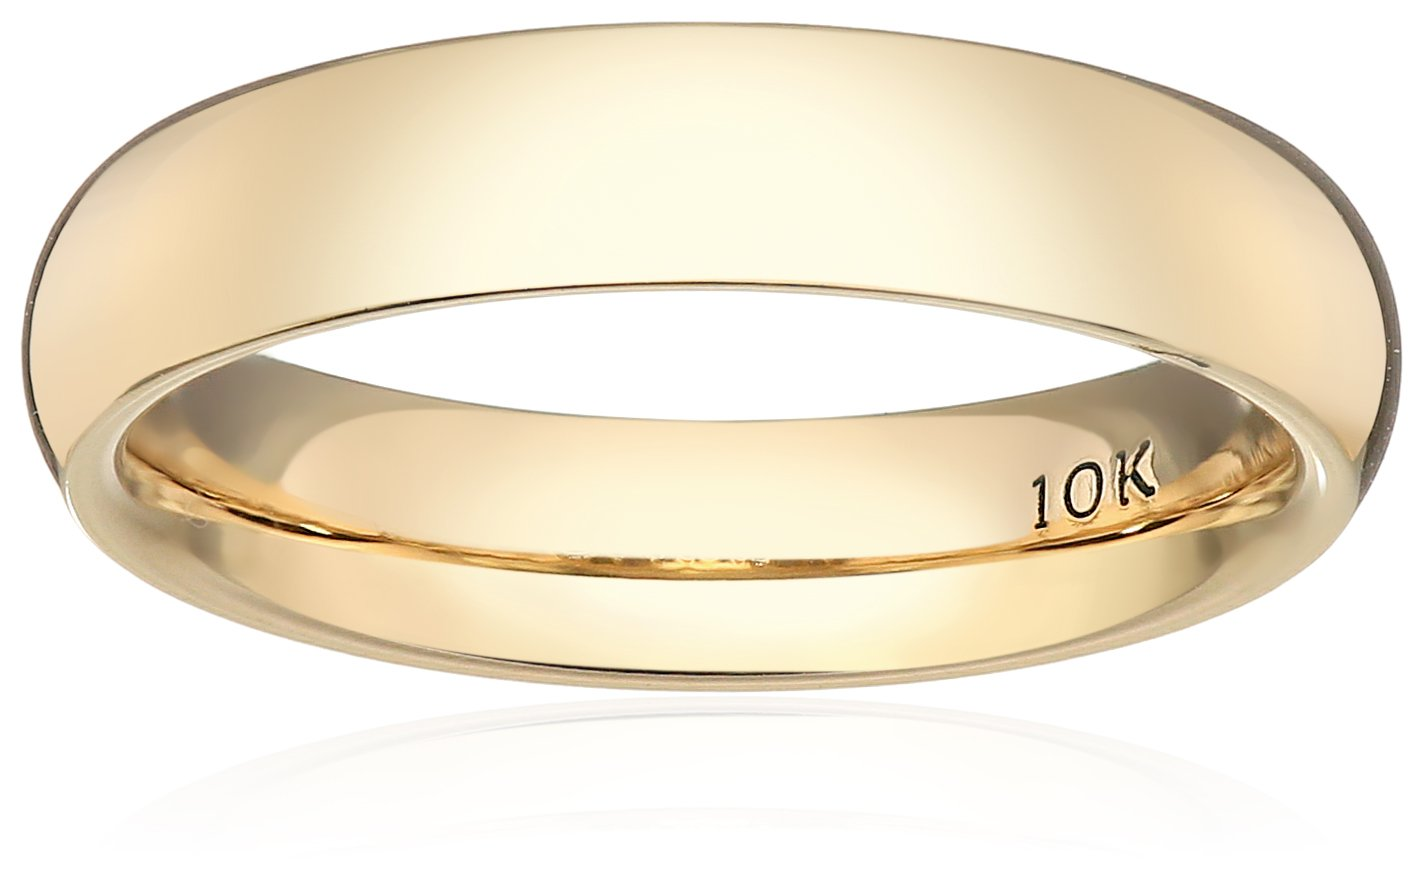 Standard Comfort-Fit 10K Yellow Gold Band, 4mm, Size 8 by Amazon Collection (Image #1)